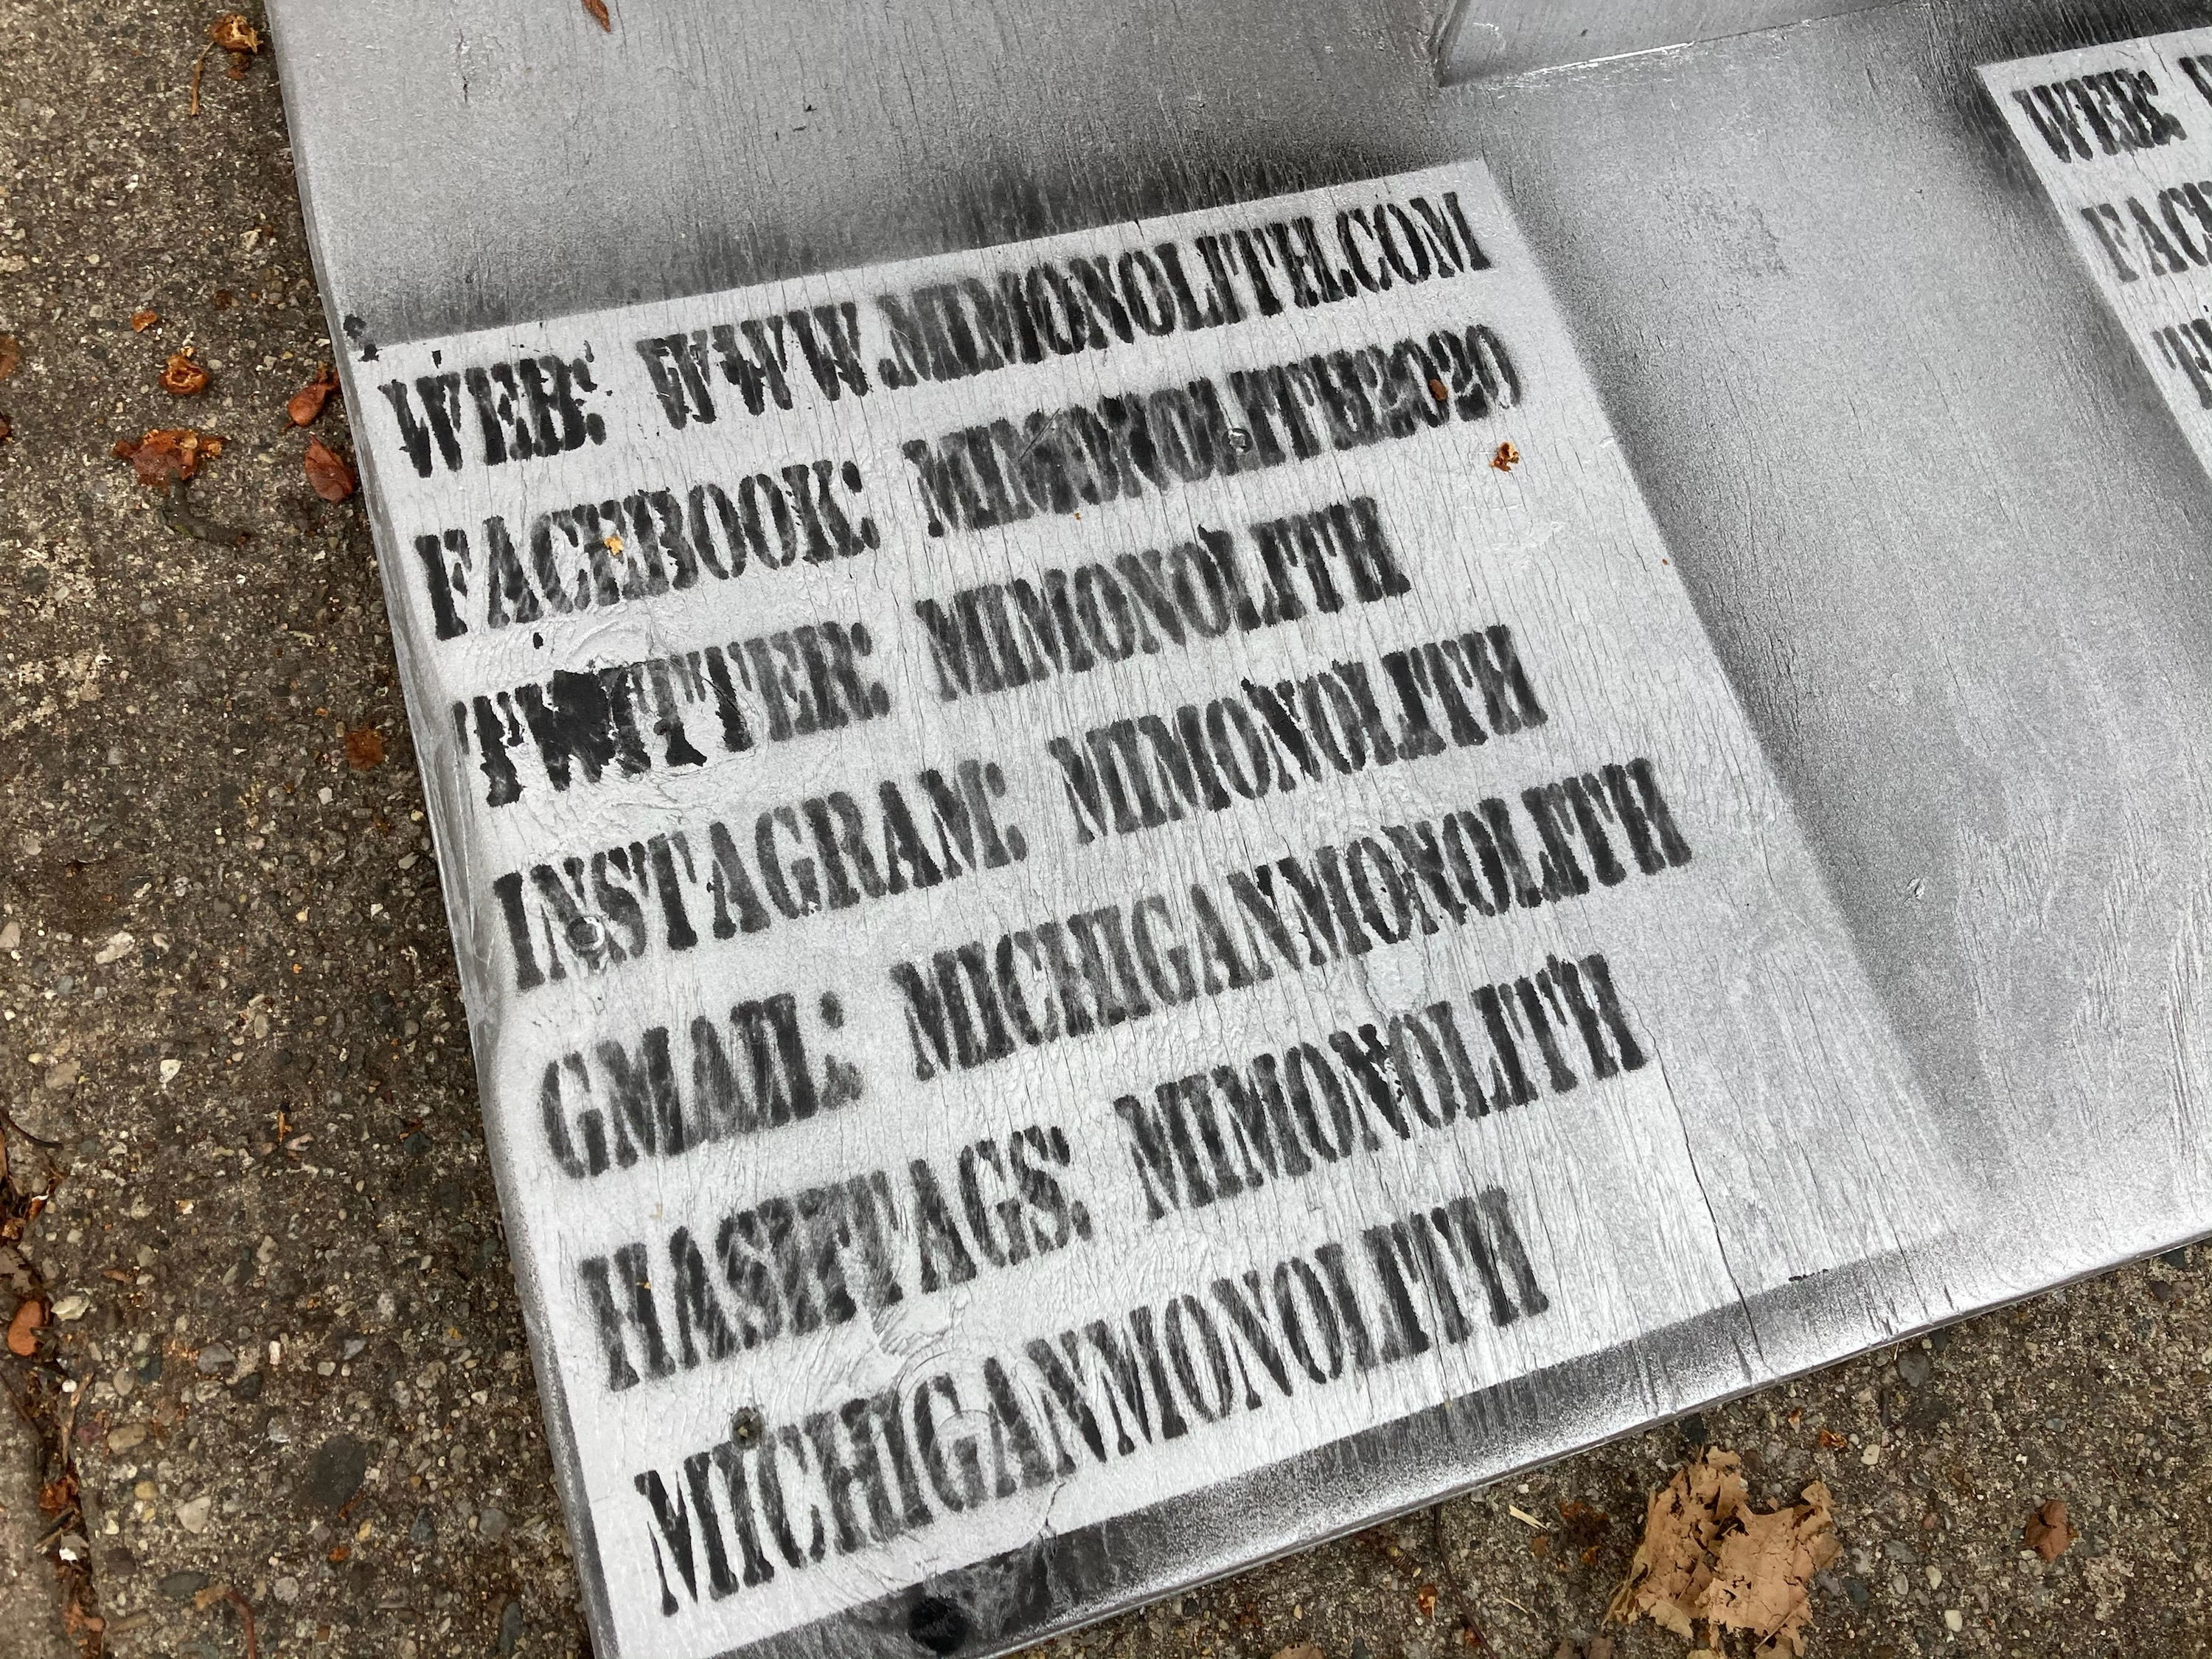 A monolith, mimicking others that have appeared in spots around the globe recently, appeared overnight in Lansing, Michigan, on Tuesday, Dec. 8, 2020, in the city's Old Town district. This one had a few placards on its base, with a listing of websites and social media accounts using the words Michigan monolith. (WWMT/ Rachel Louise Just)